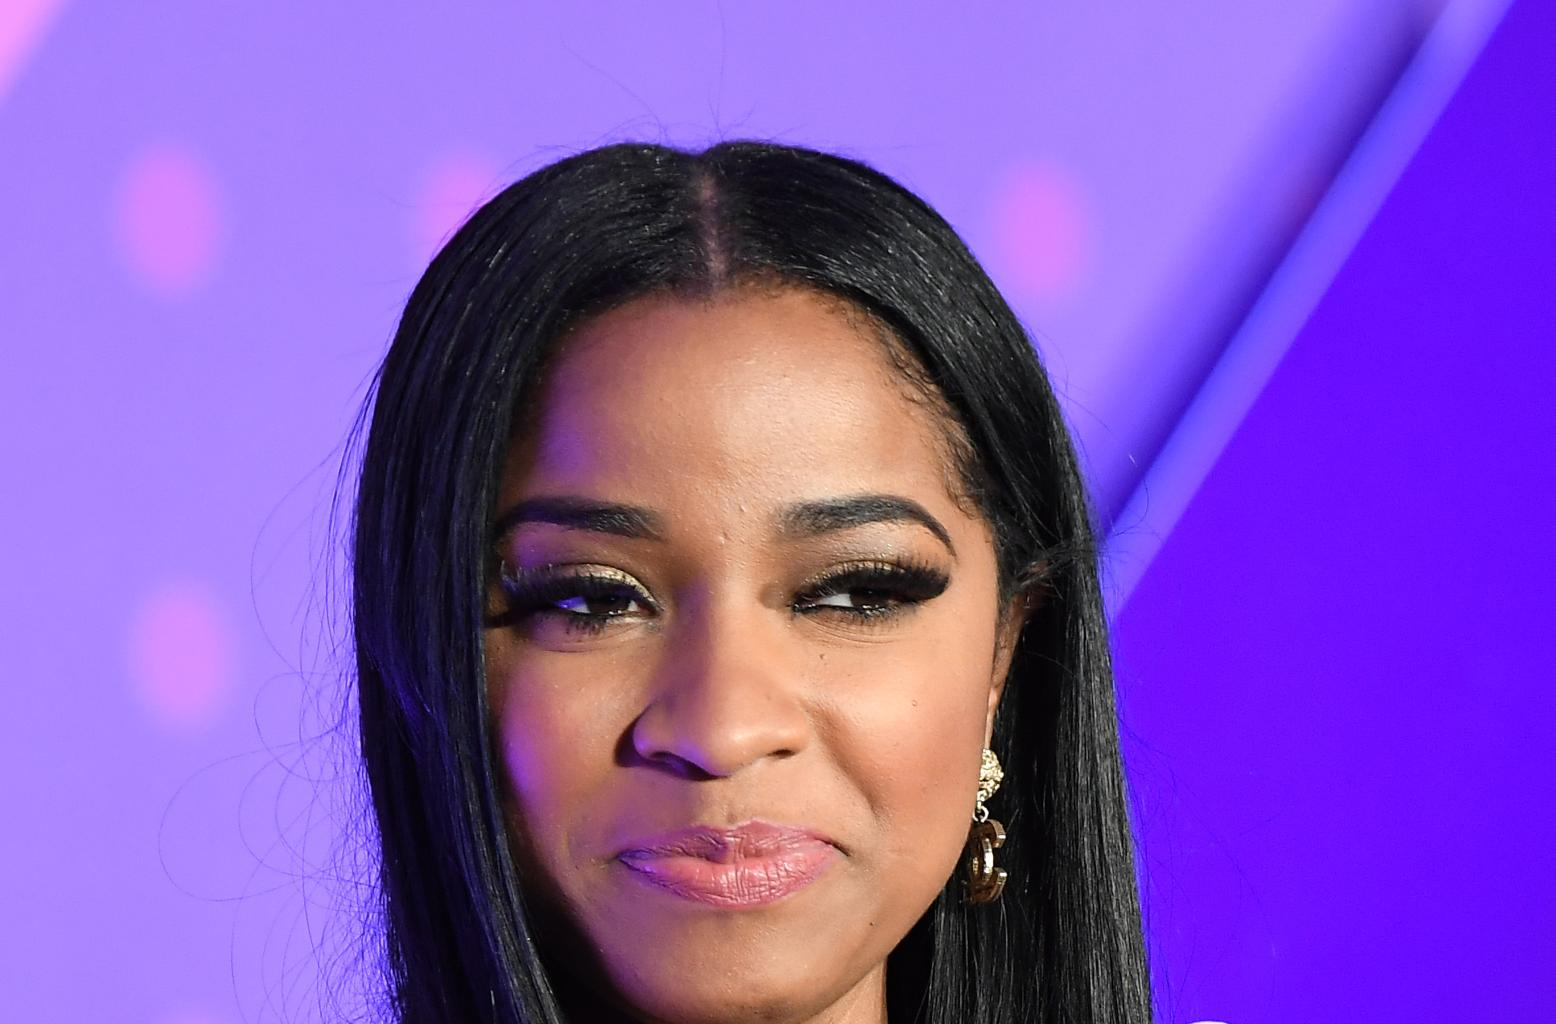 Toya Johnson Looks Gorgeous In This Pink Outfit